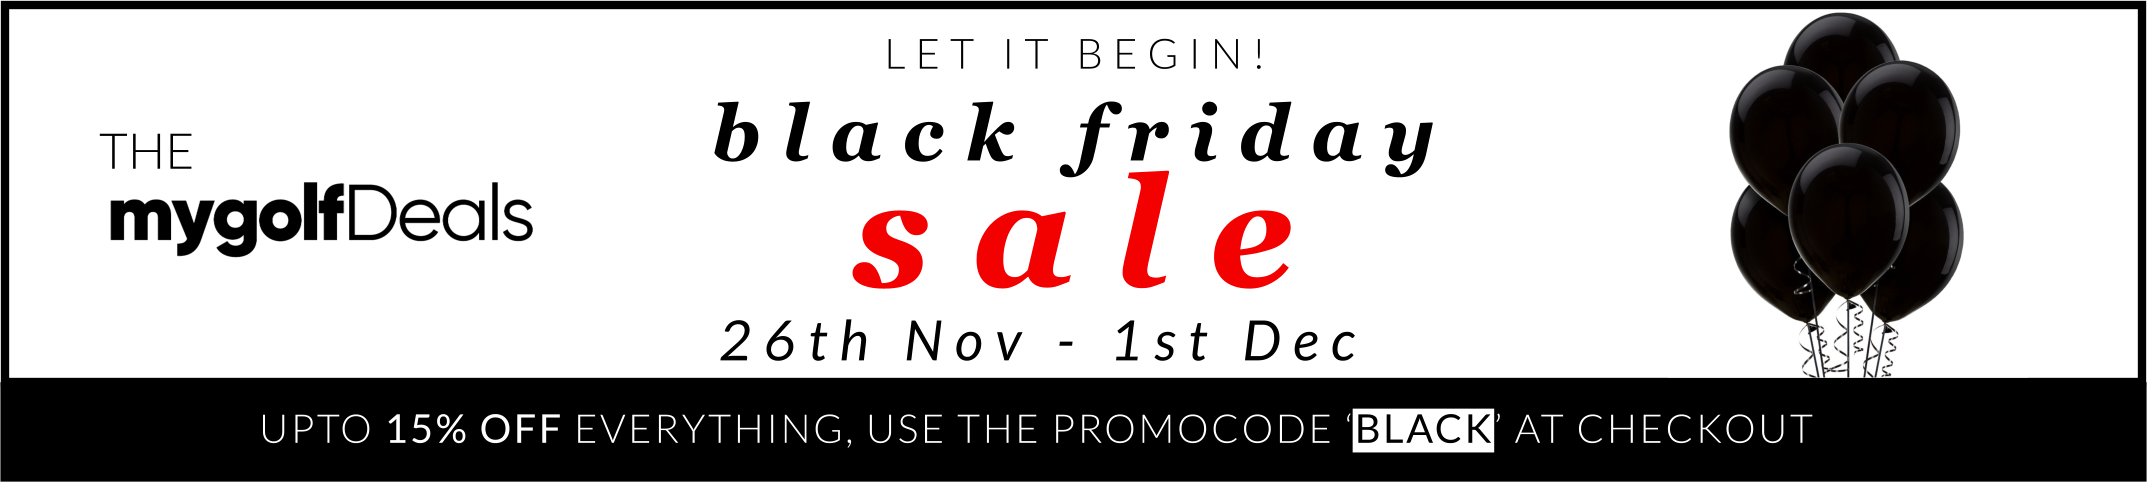 Black Friday Sales - Discount